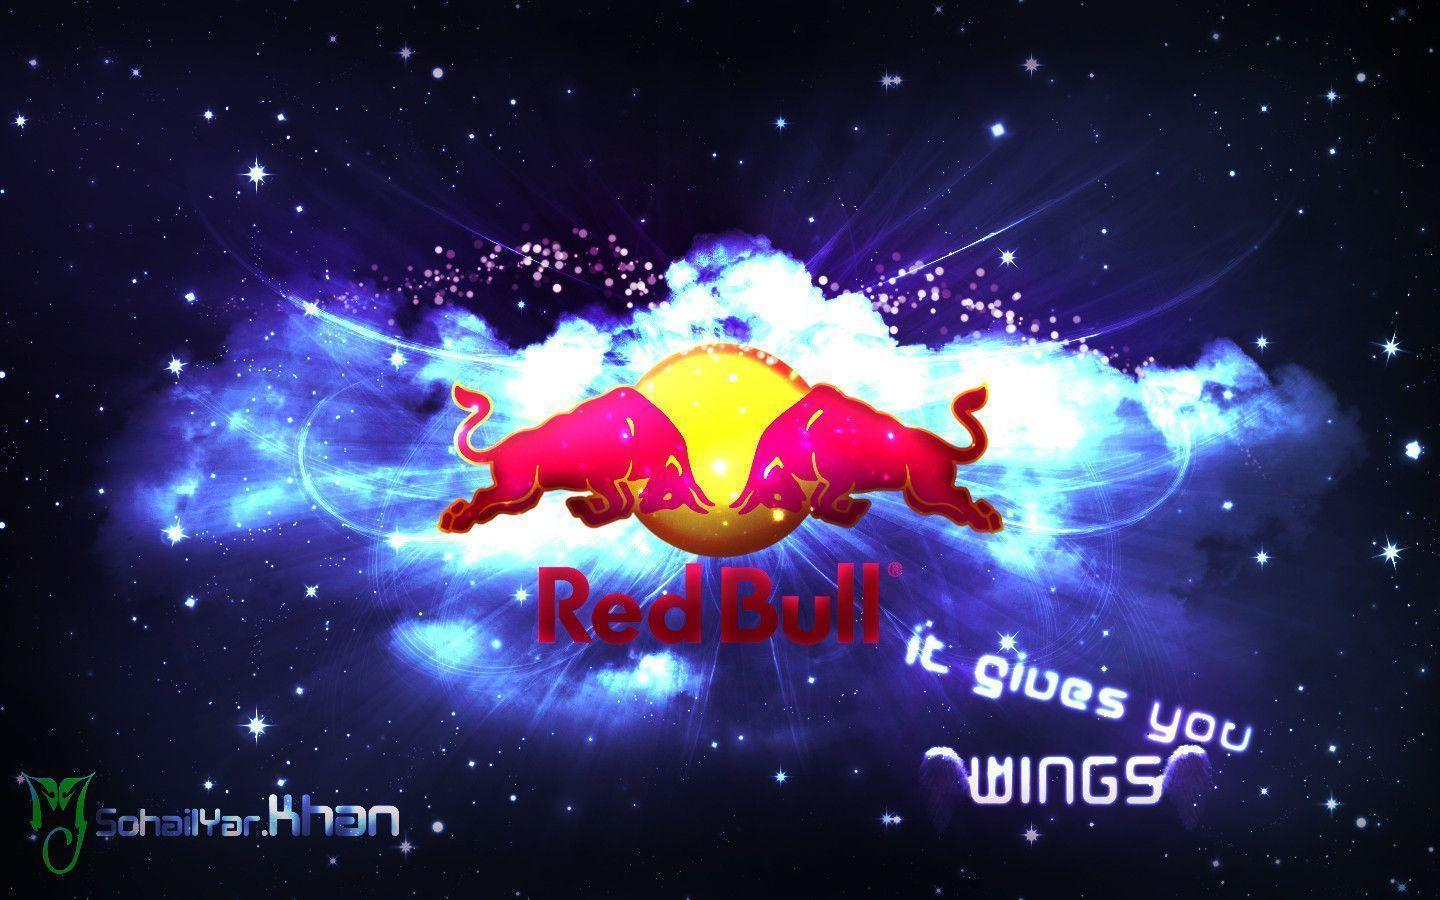 red bull wallpapers - wallpaper cave